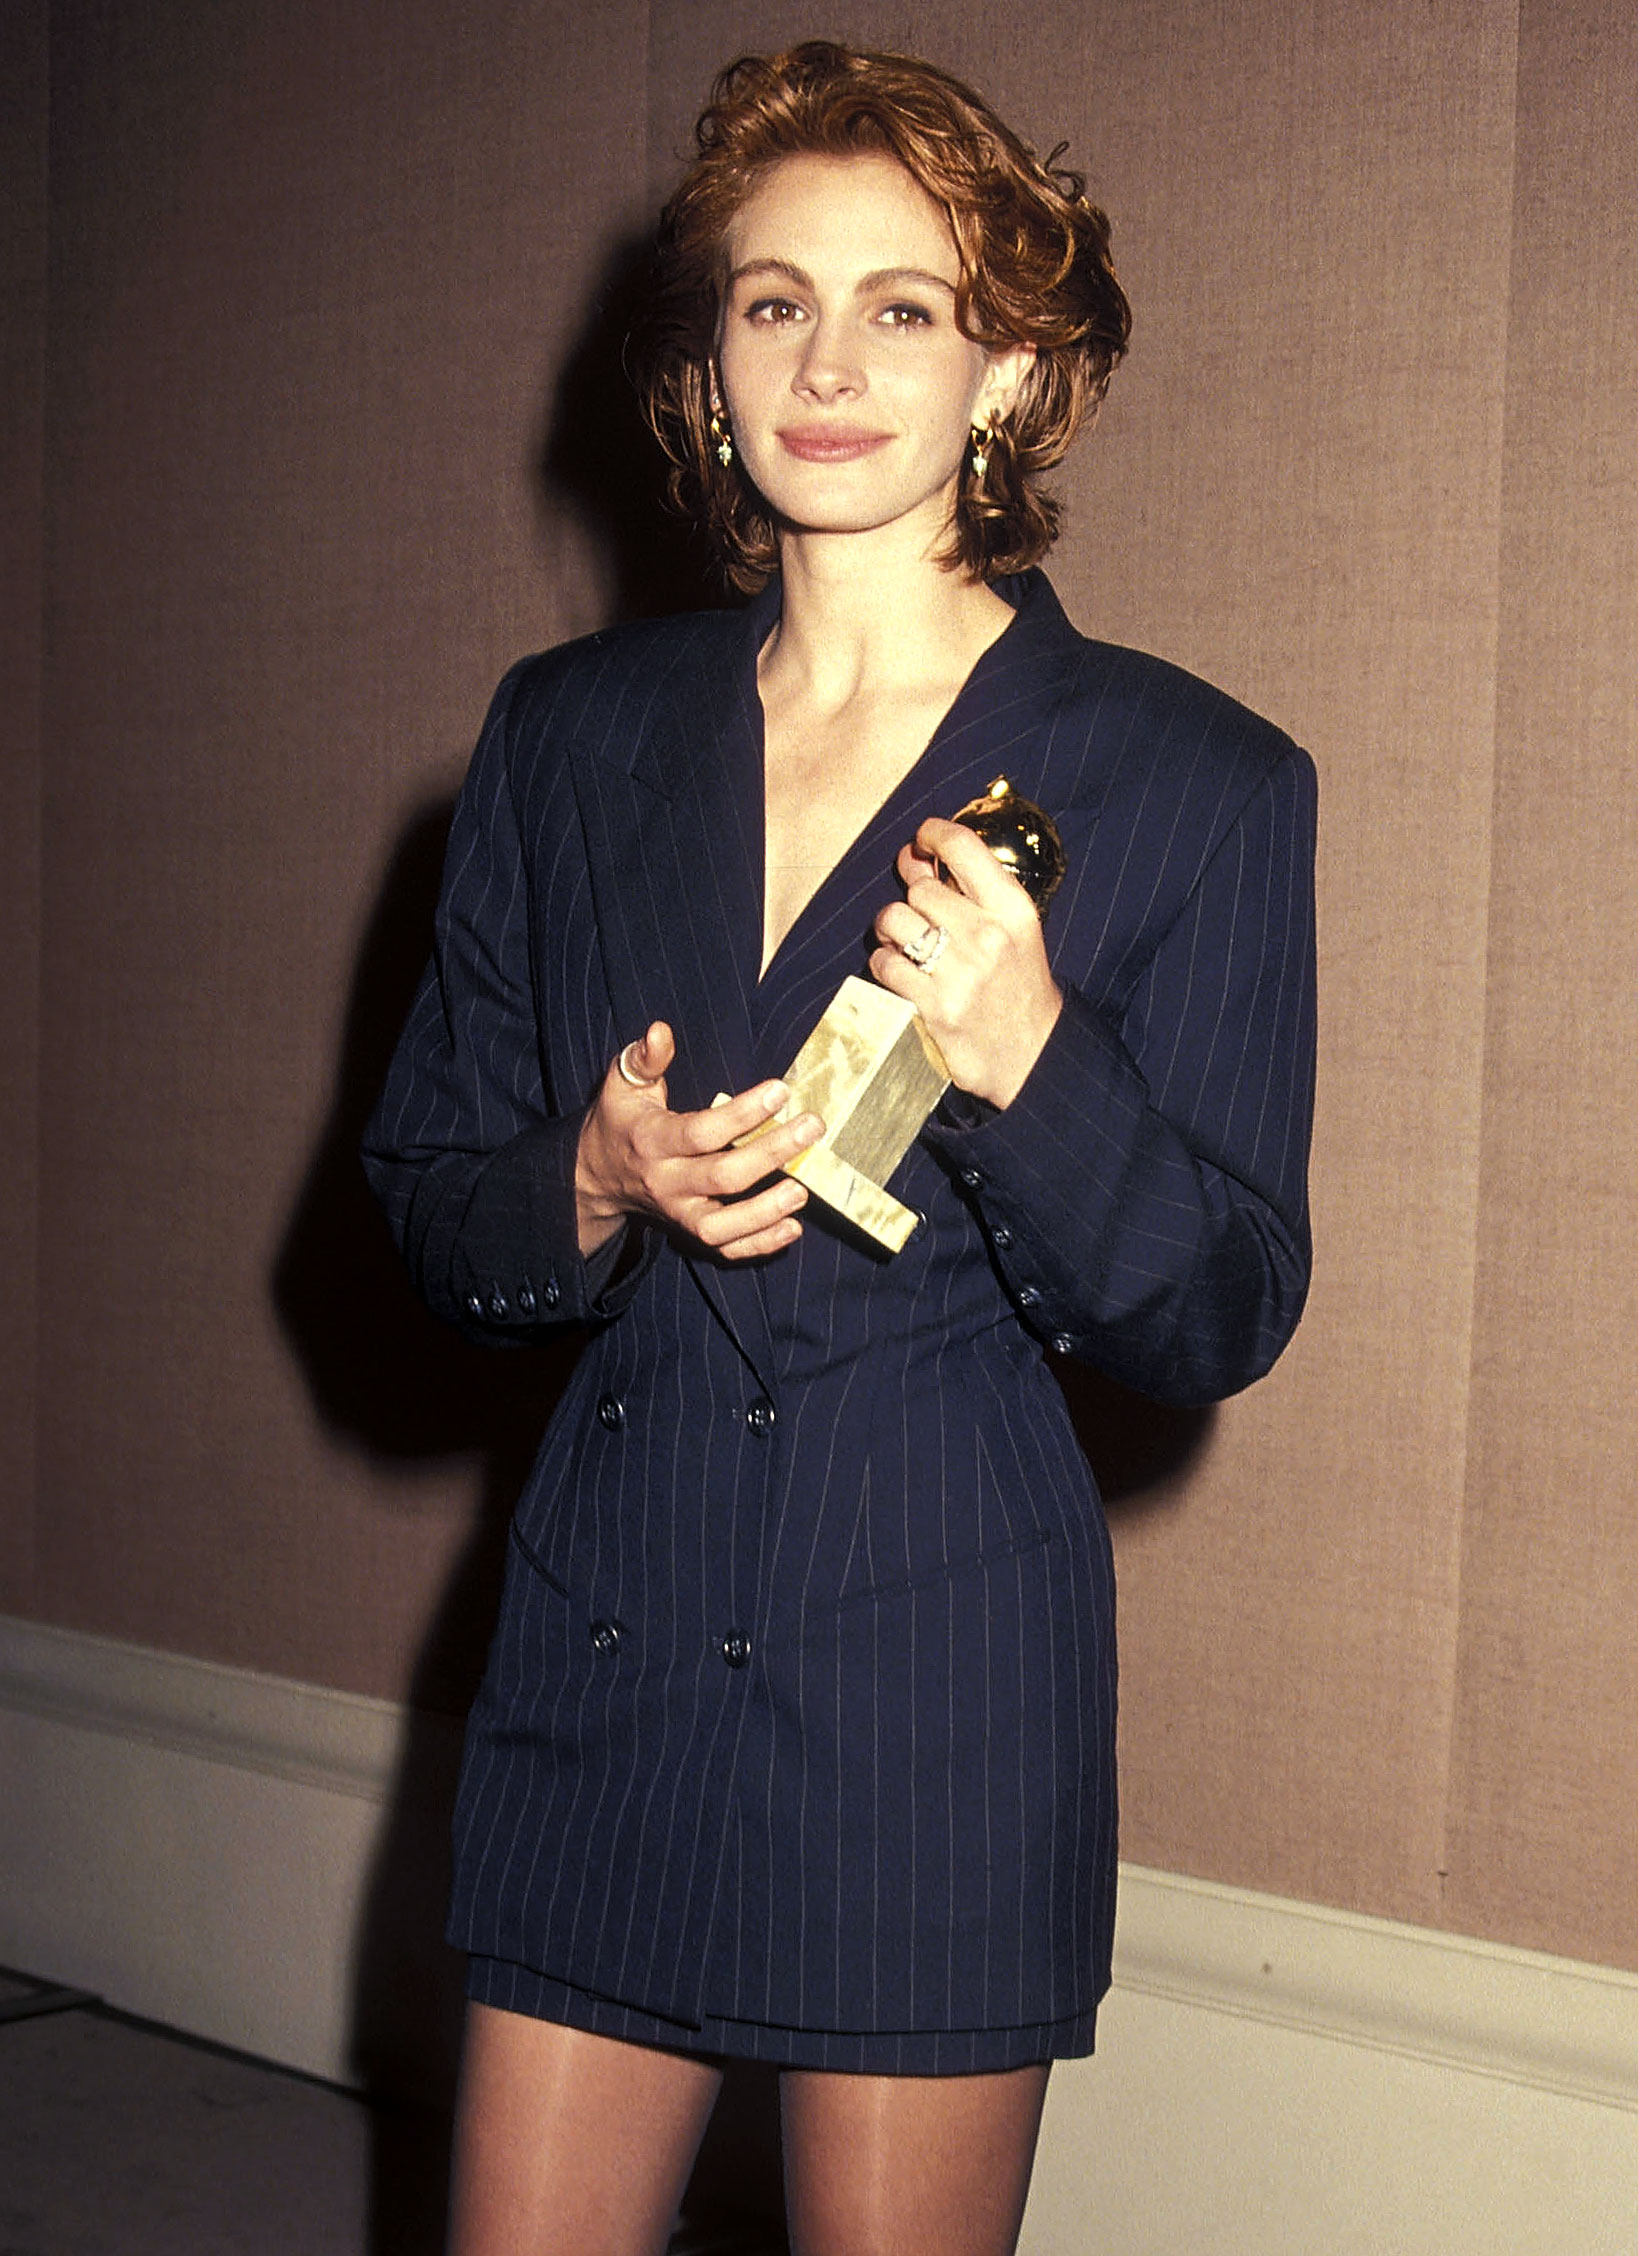 Julia Roberts - The actress showed some leg while picking up her best actress Golden Globe for Pretty Woman in 1991 in a pinstripe skirt suit and sheer stockings.